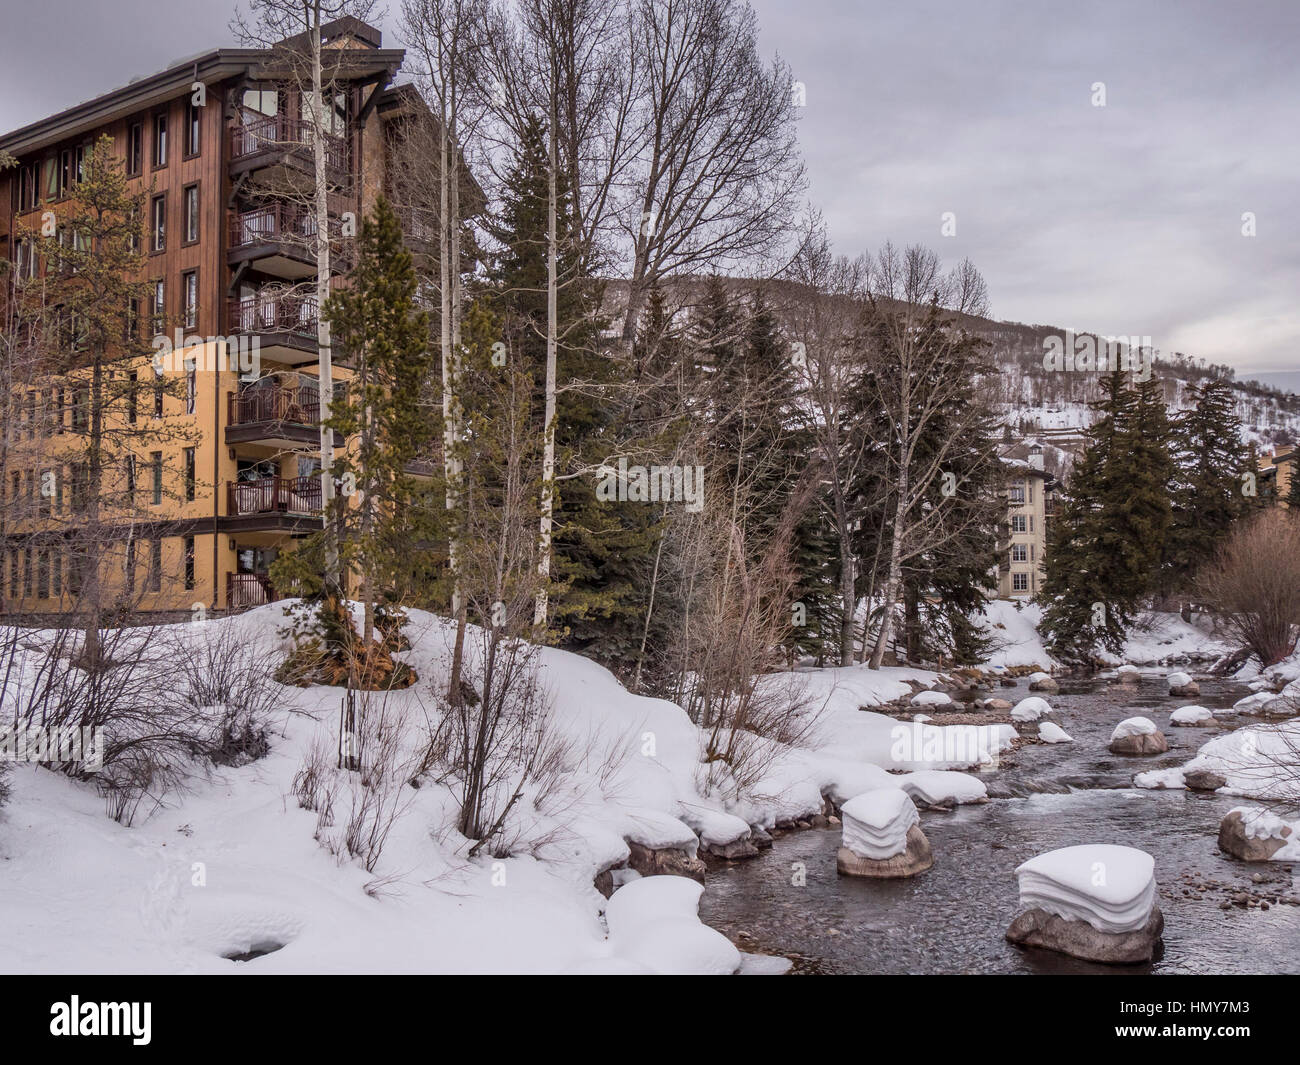 Gore Creek, Vail Village, winter, Vail Ski Resort, Vail, Colorado. - Stock Image